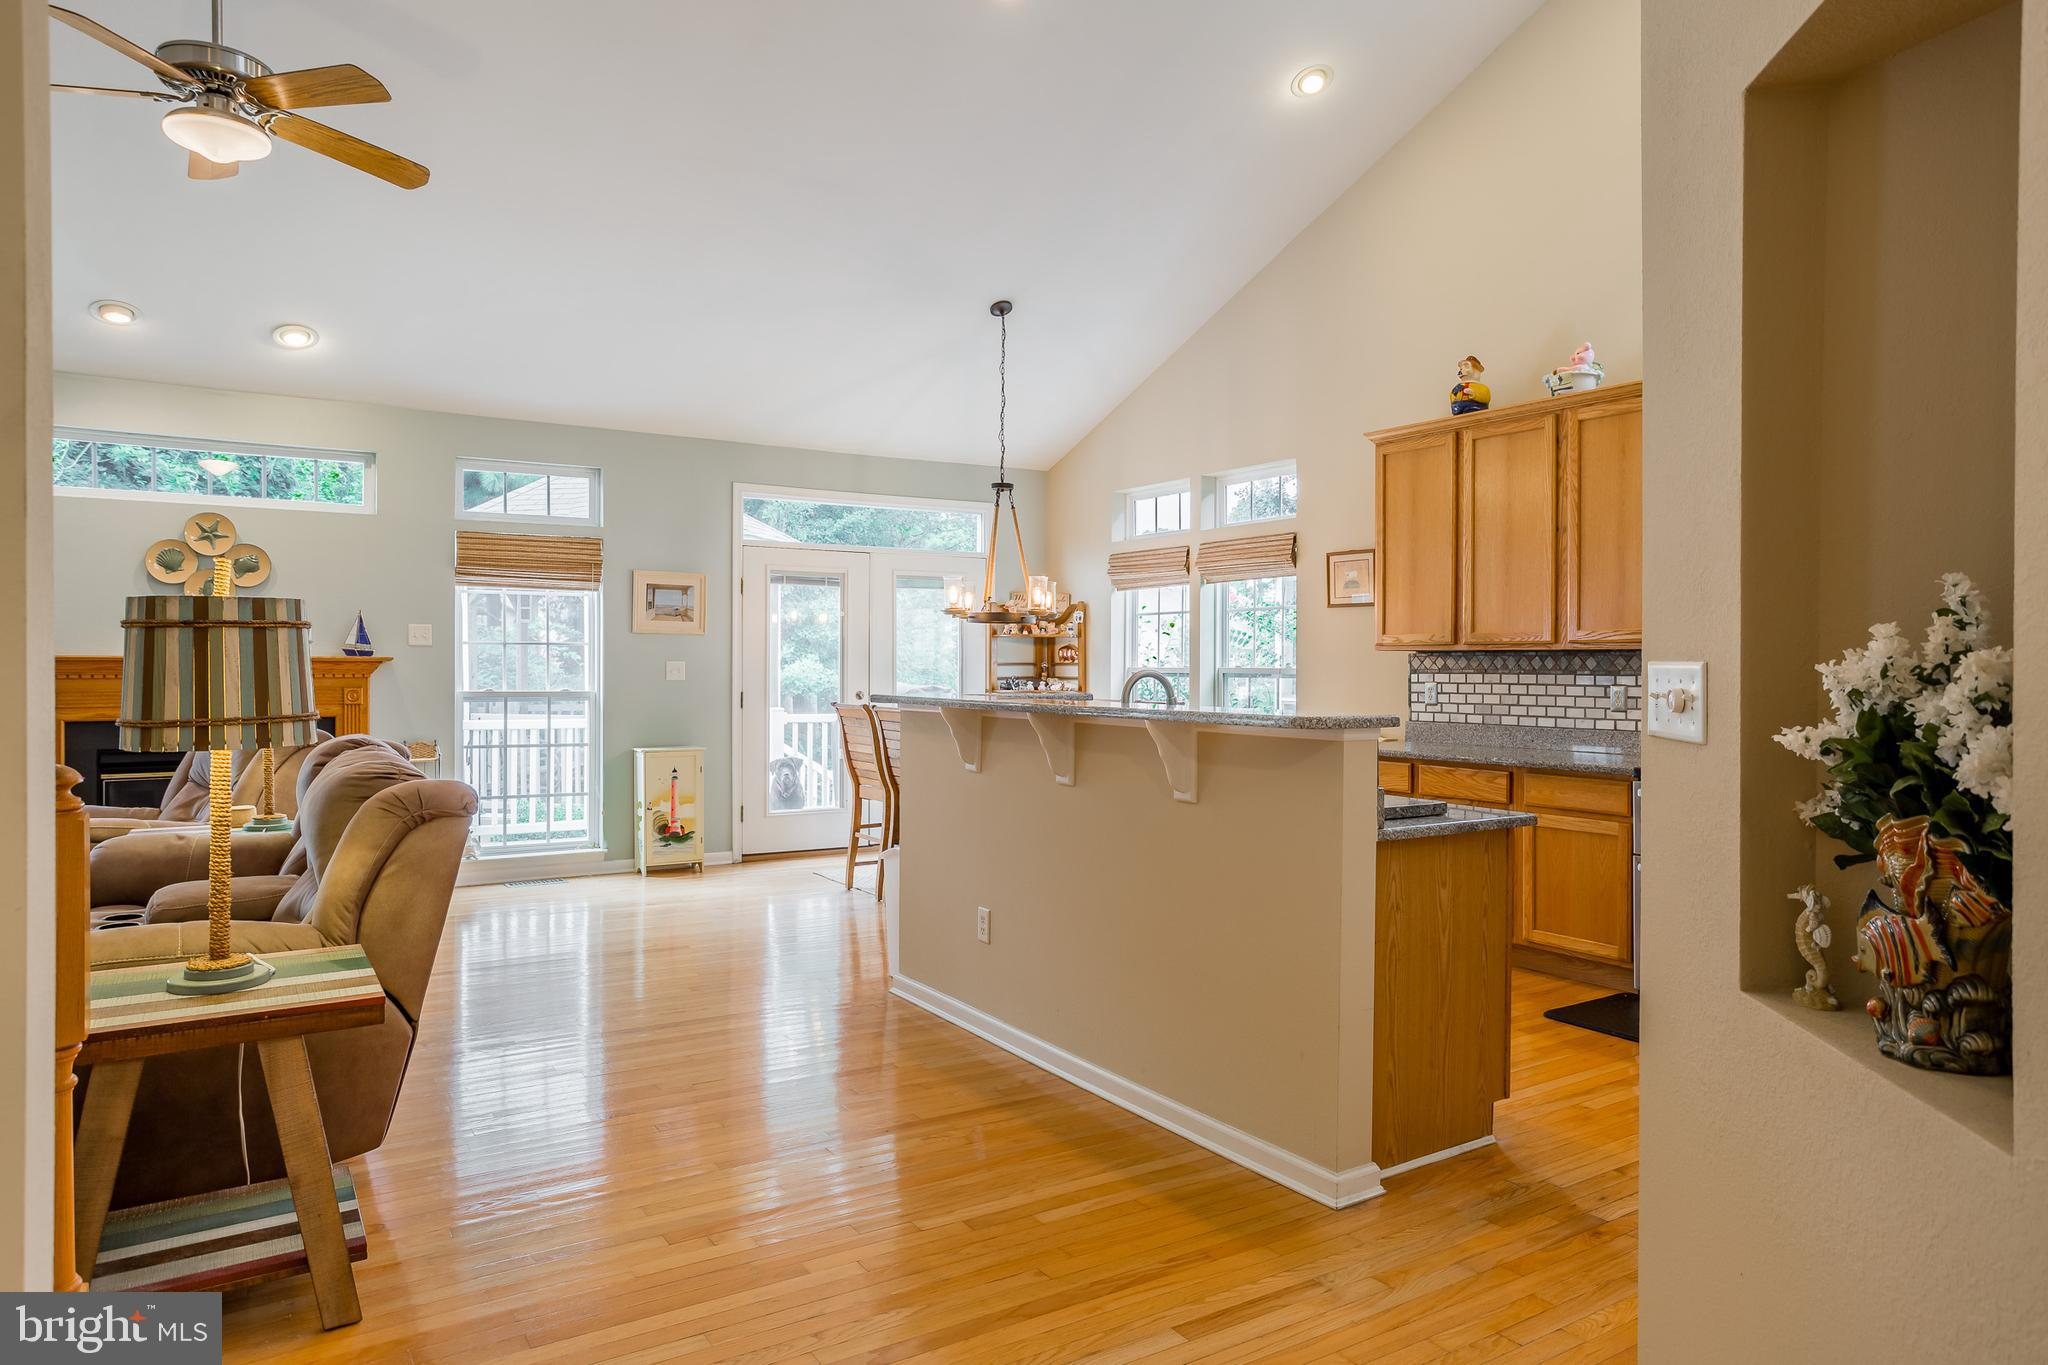 Plan your trip to the beach to tour this beautiful 4BR/3BA home - we will accommodate showings after